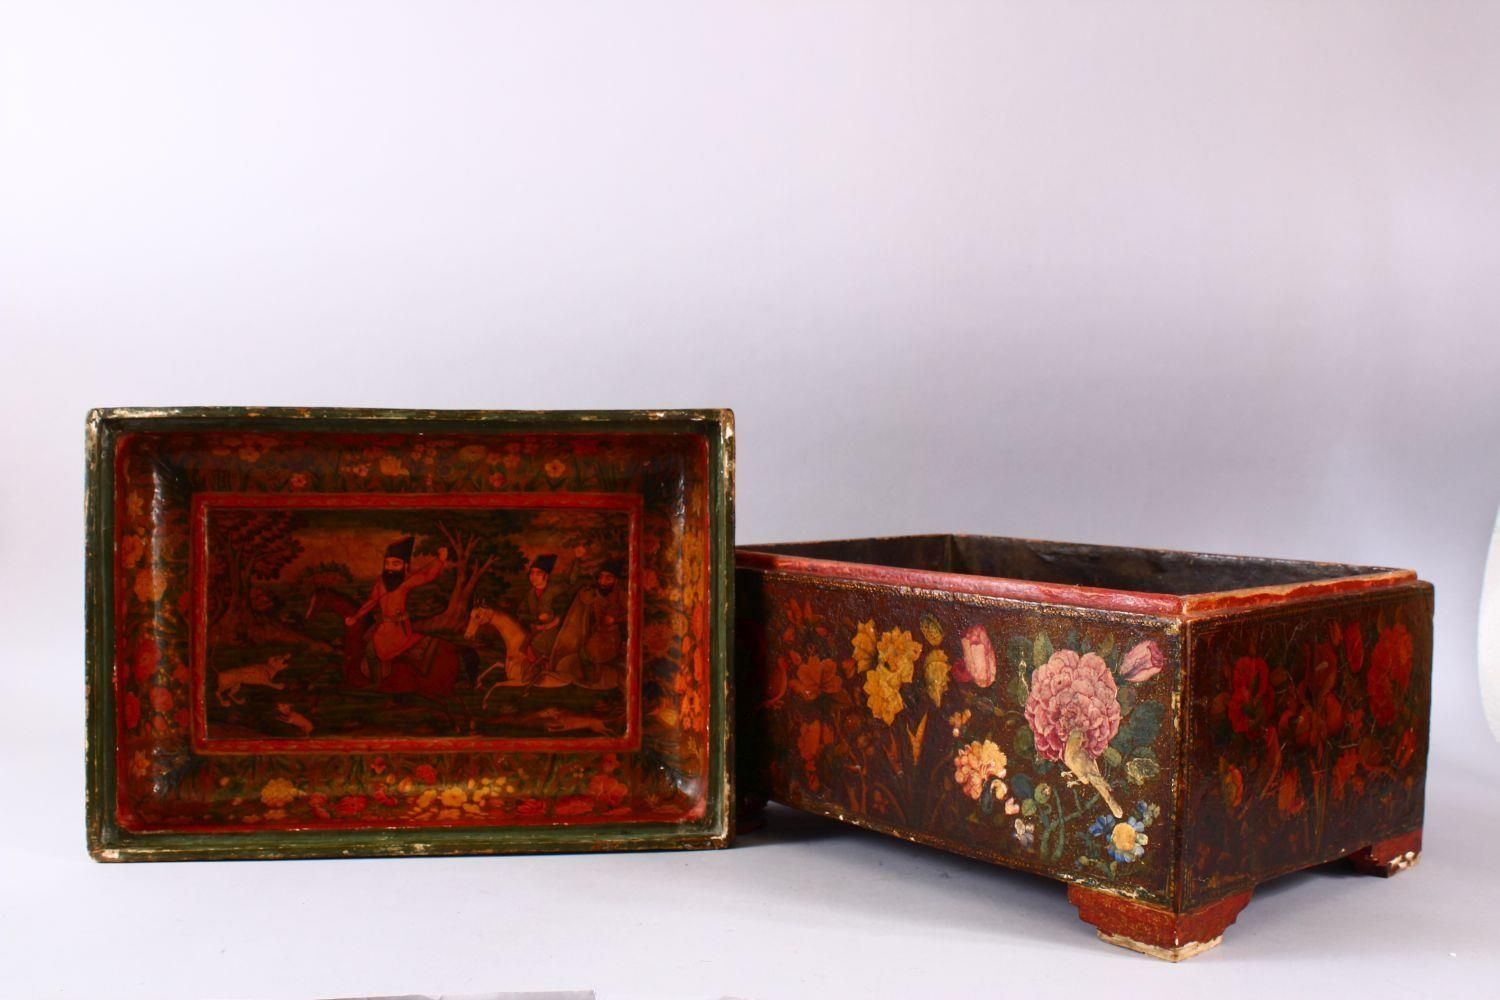 A GOOD PERSIAN QAJAR LACQUER PAINTED LIDDED BOX, decorated to the exterior with birds and detailed - Image 10 of 15